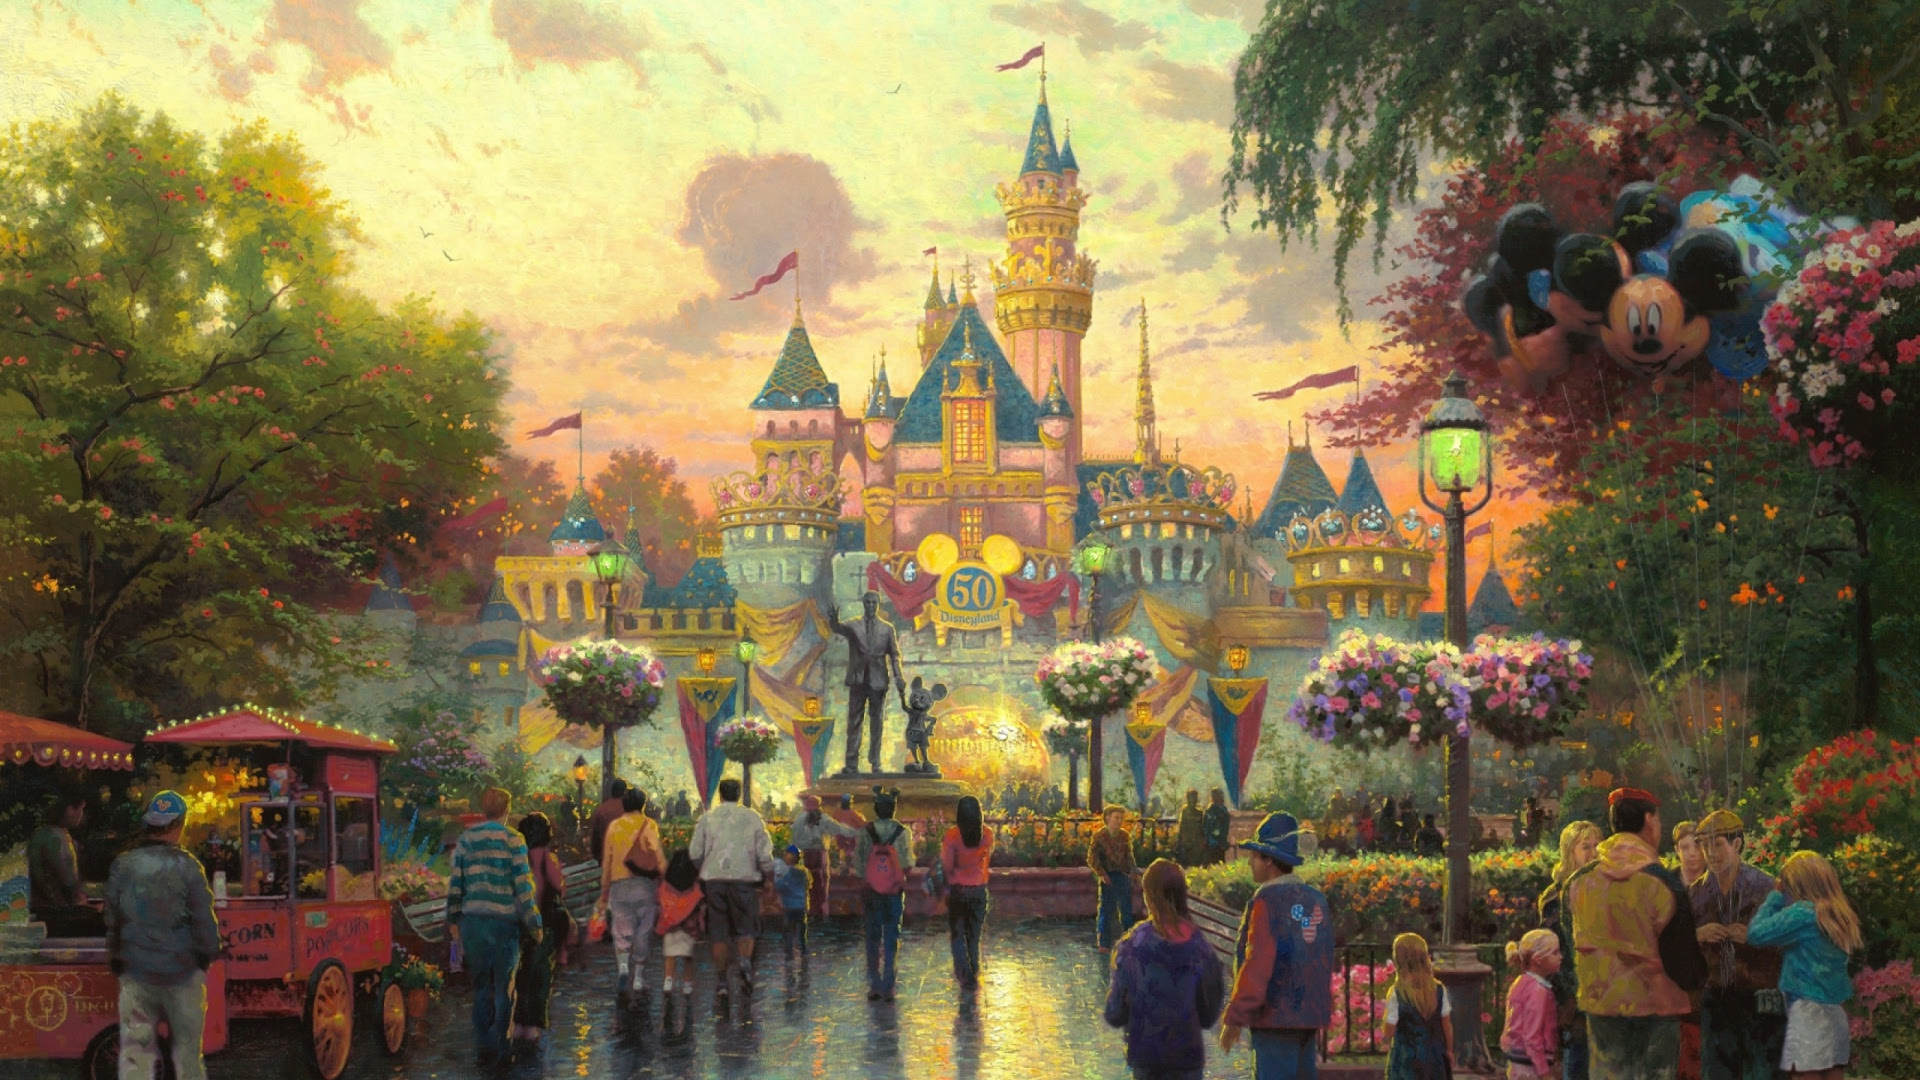 1920x1080 Walt Disney Castle Anniversary Desktop Pc And Mac Wallpaper